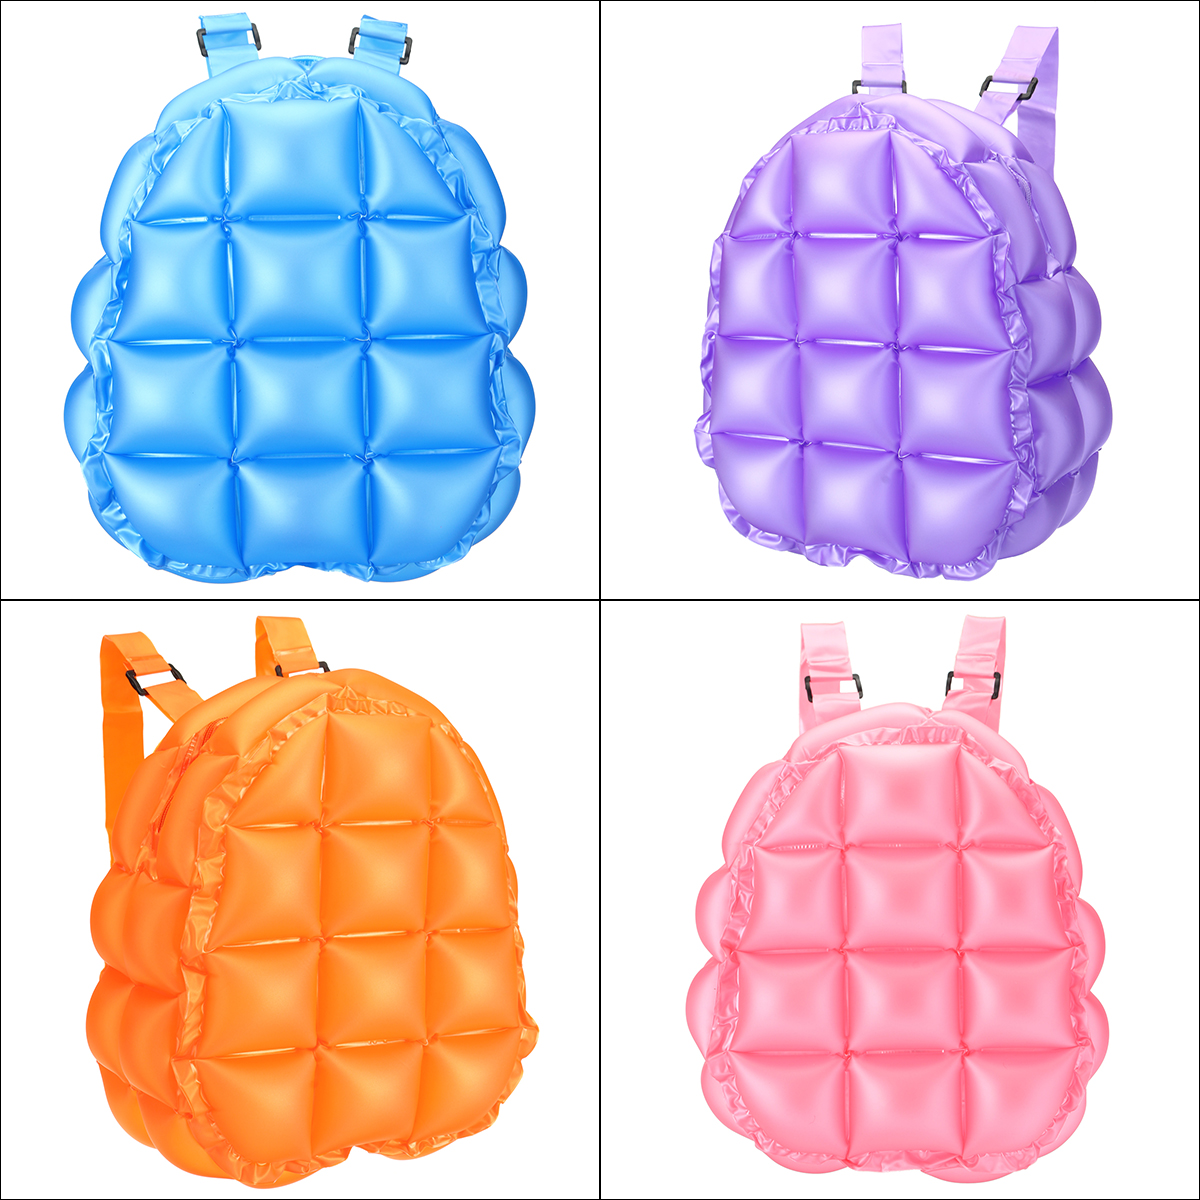 Inflatable Bubble Blow Up Backpack 90s Retro Rave Festive Bopping Spice Girls Space Bags